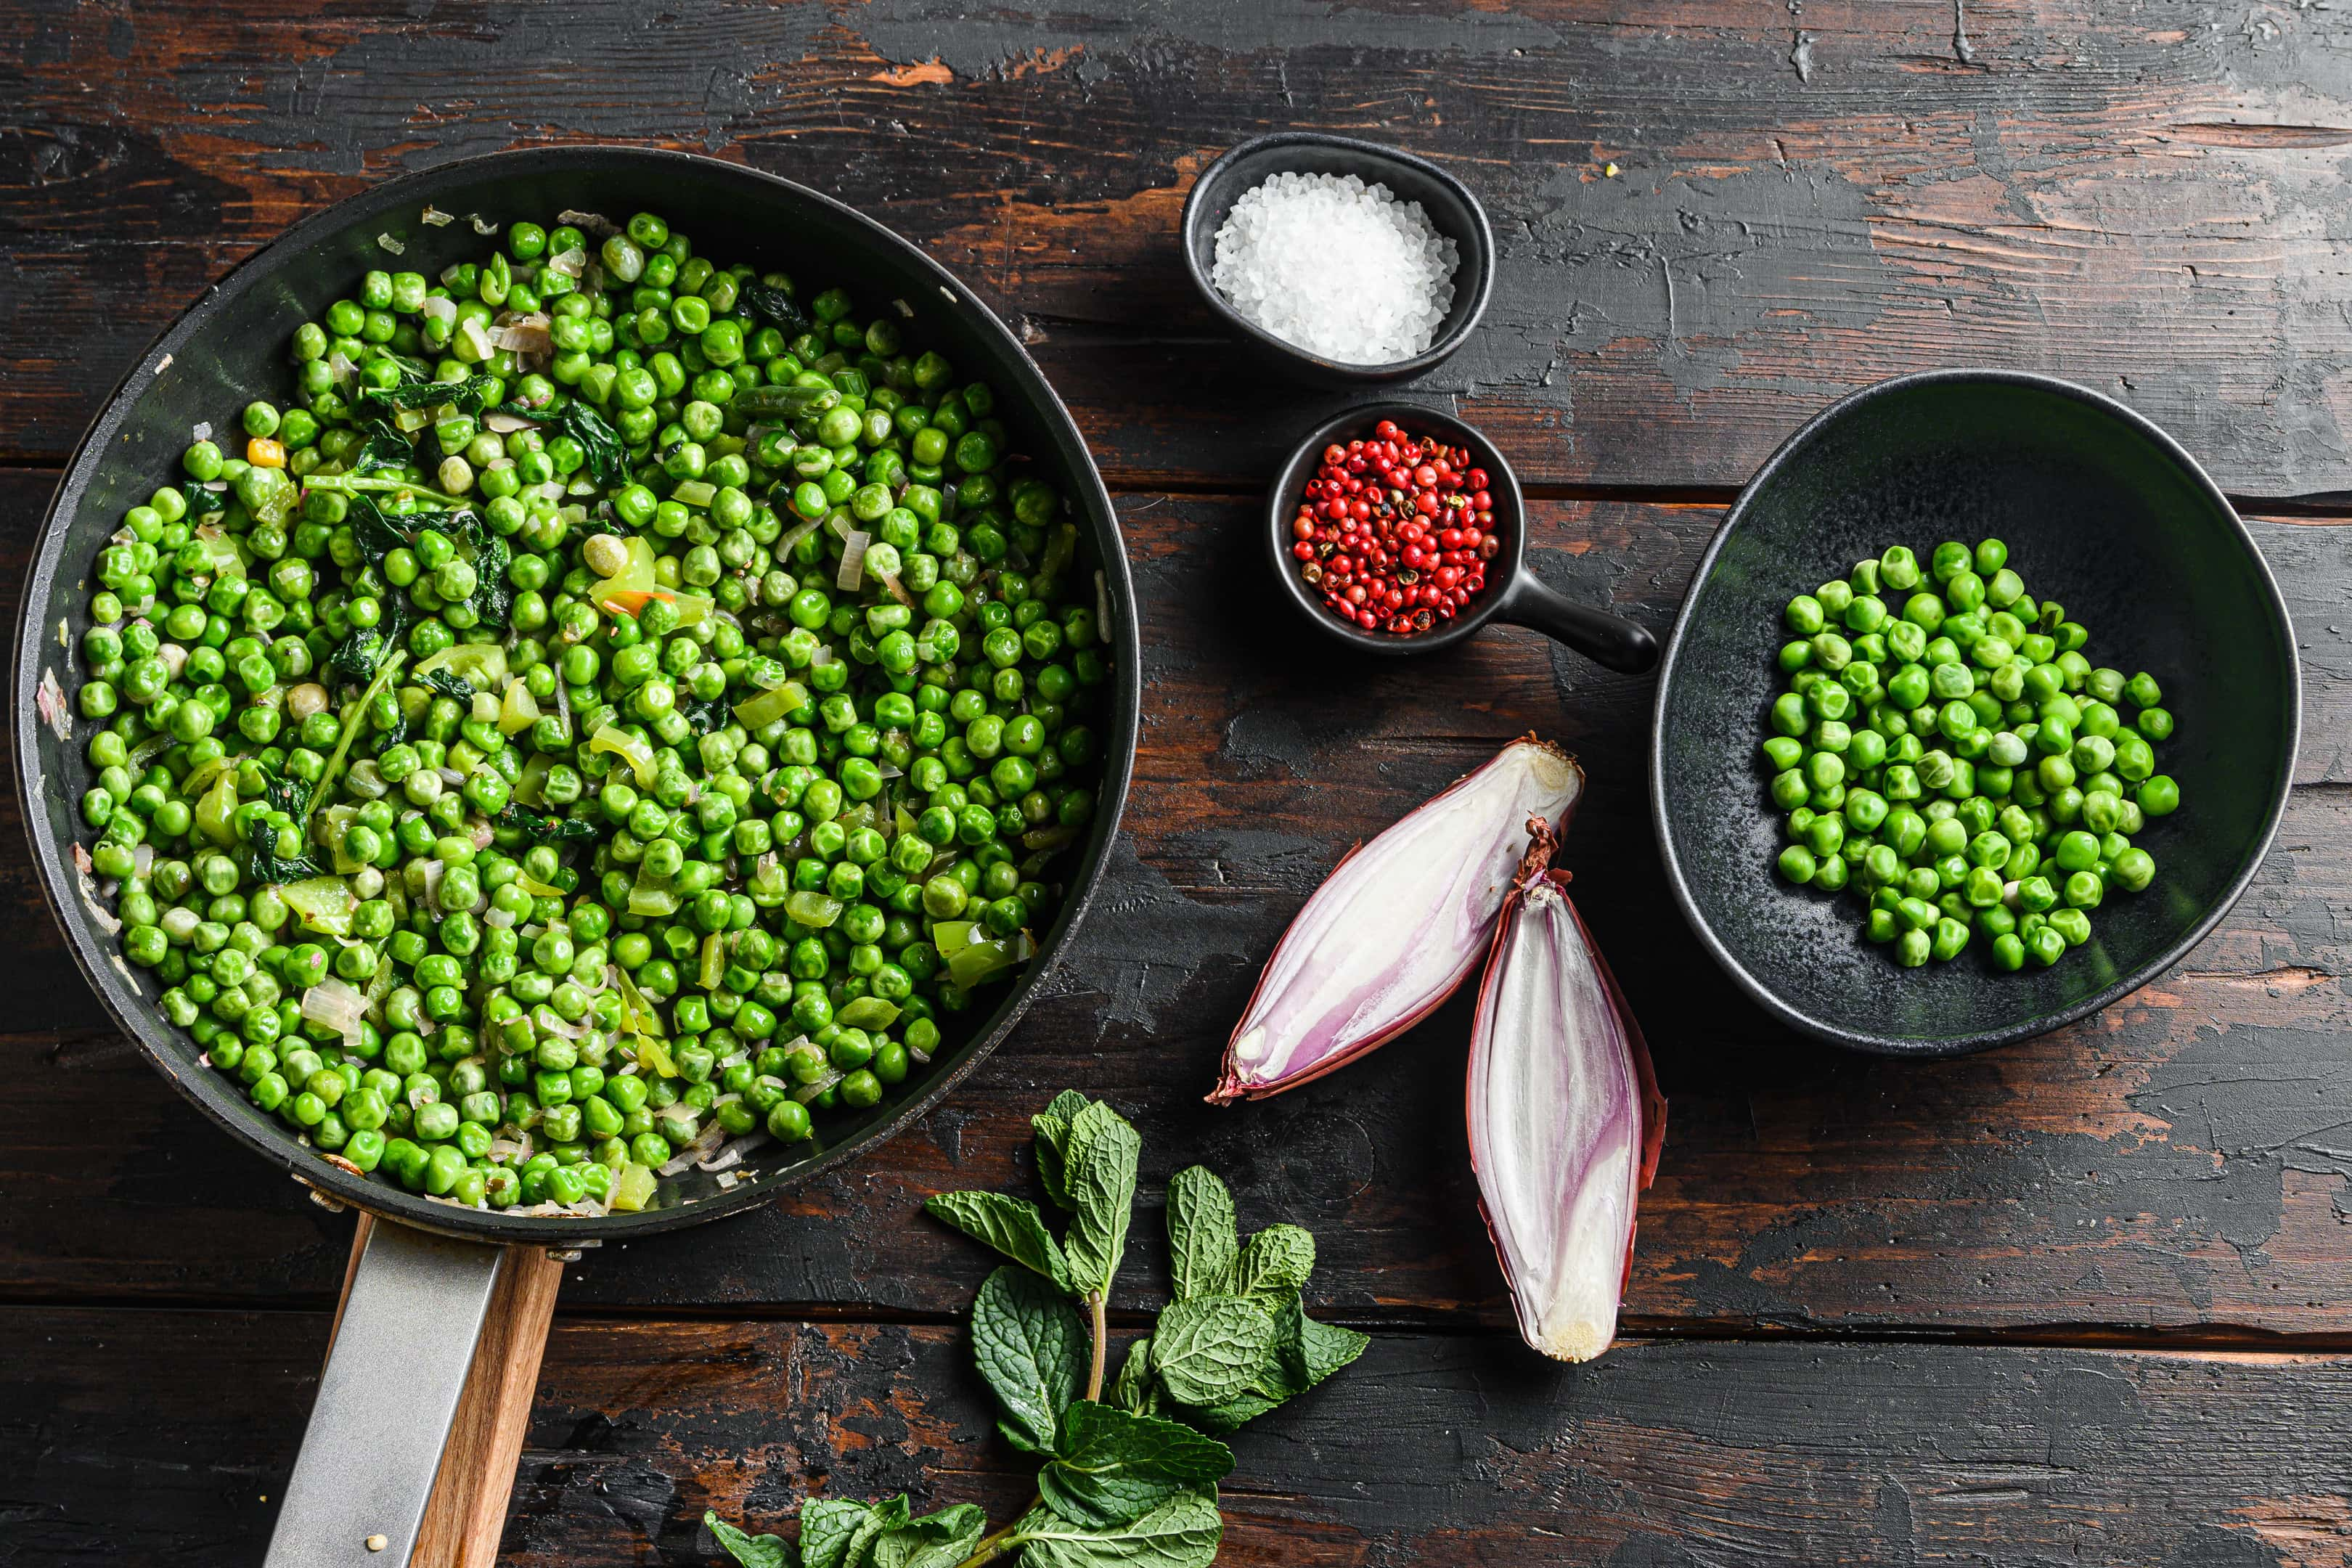 Large pan of cooked peas on wooden table